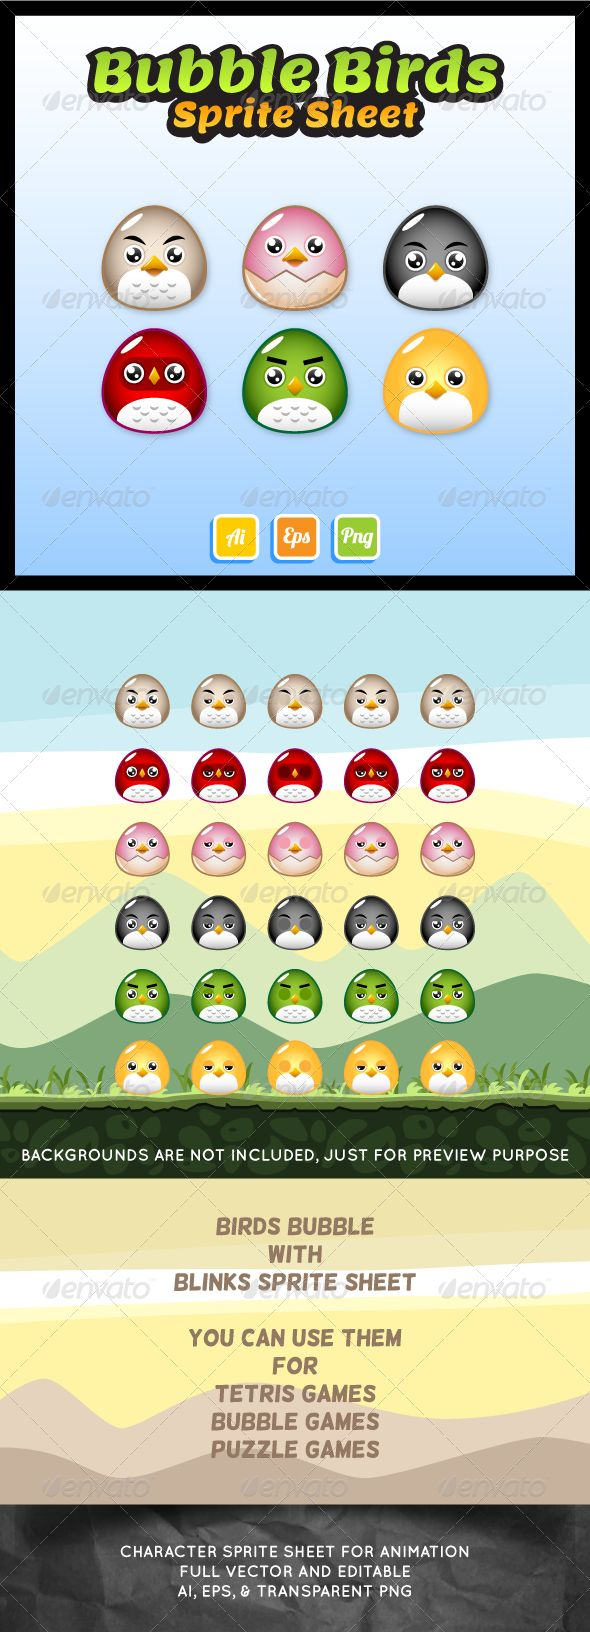 Bubble Birds Sprite Sheet — Vector EPS #sidescroller #puzzle • Available here → https://graphicriver.net/item/bubble-birds-sprite-sheet/7293217?ref=pxcr